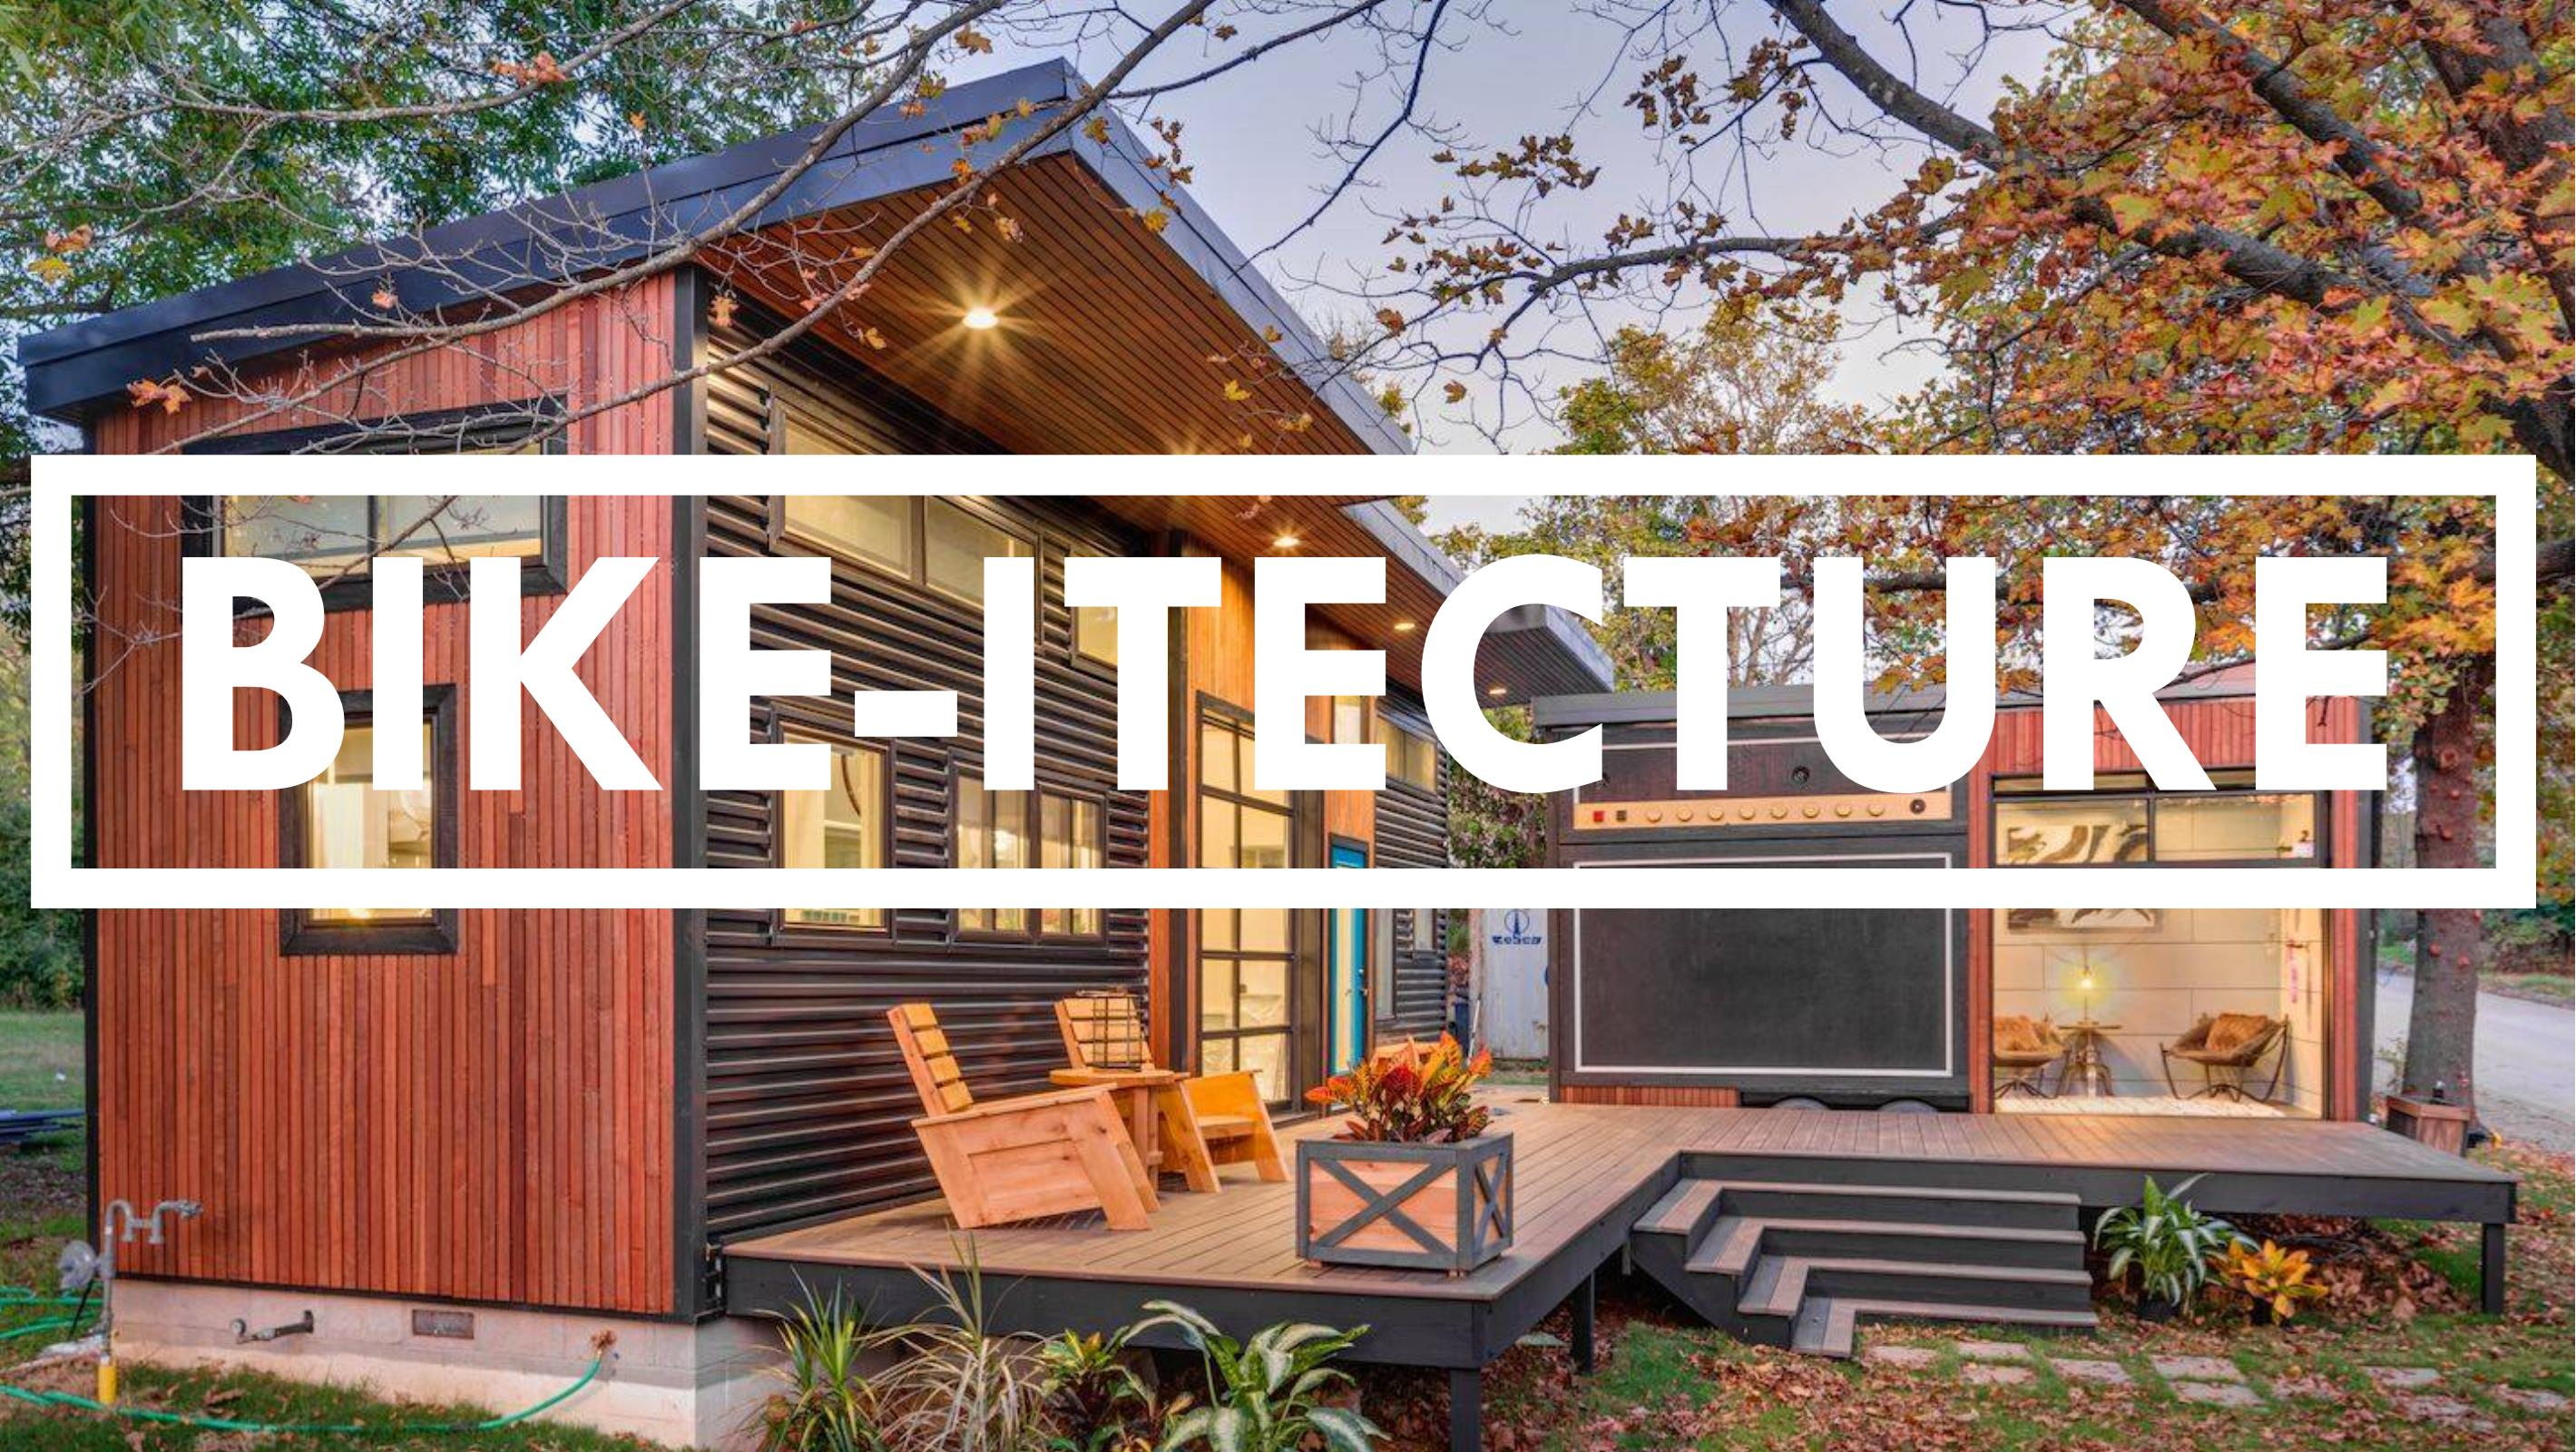 Tiny Home Designs: U.S. Green Building Council To Tour Fayetteville Tiny